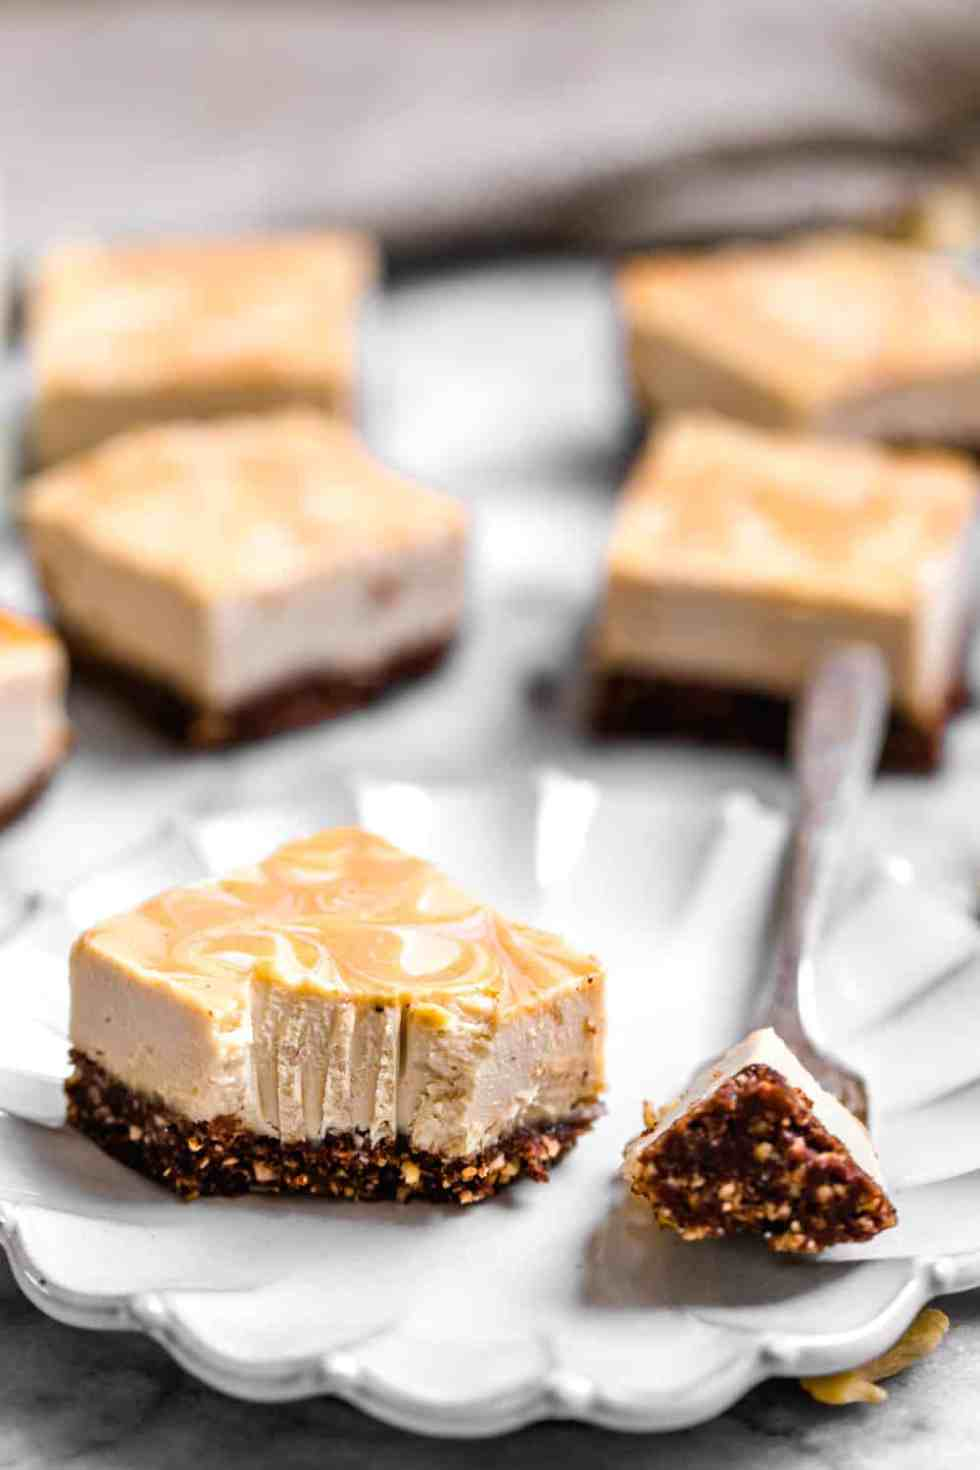 a peanut butter cheesecake bar on a white plate with a fork on the side